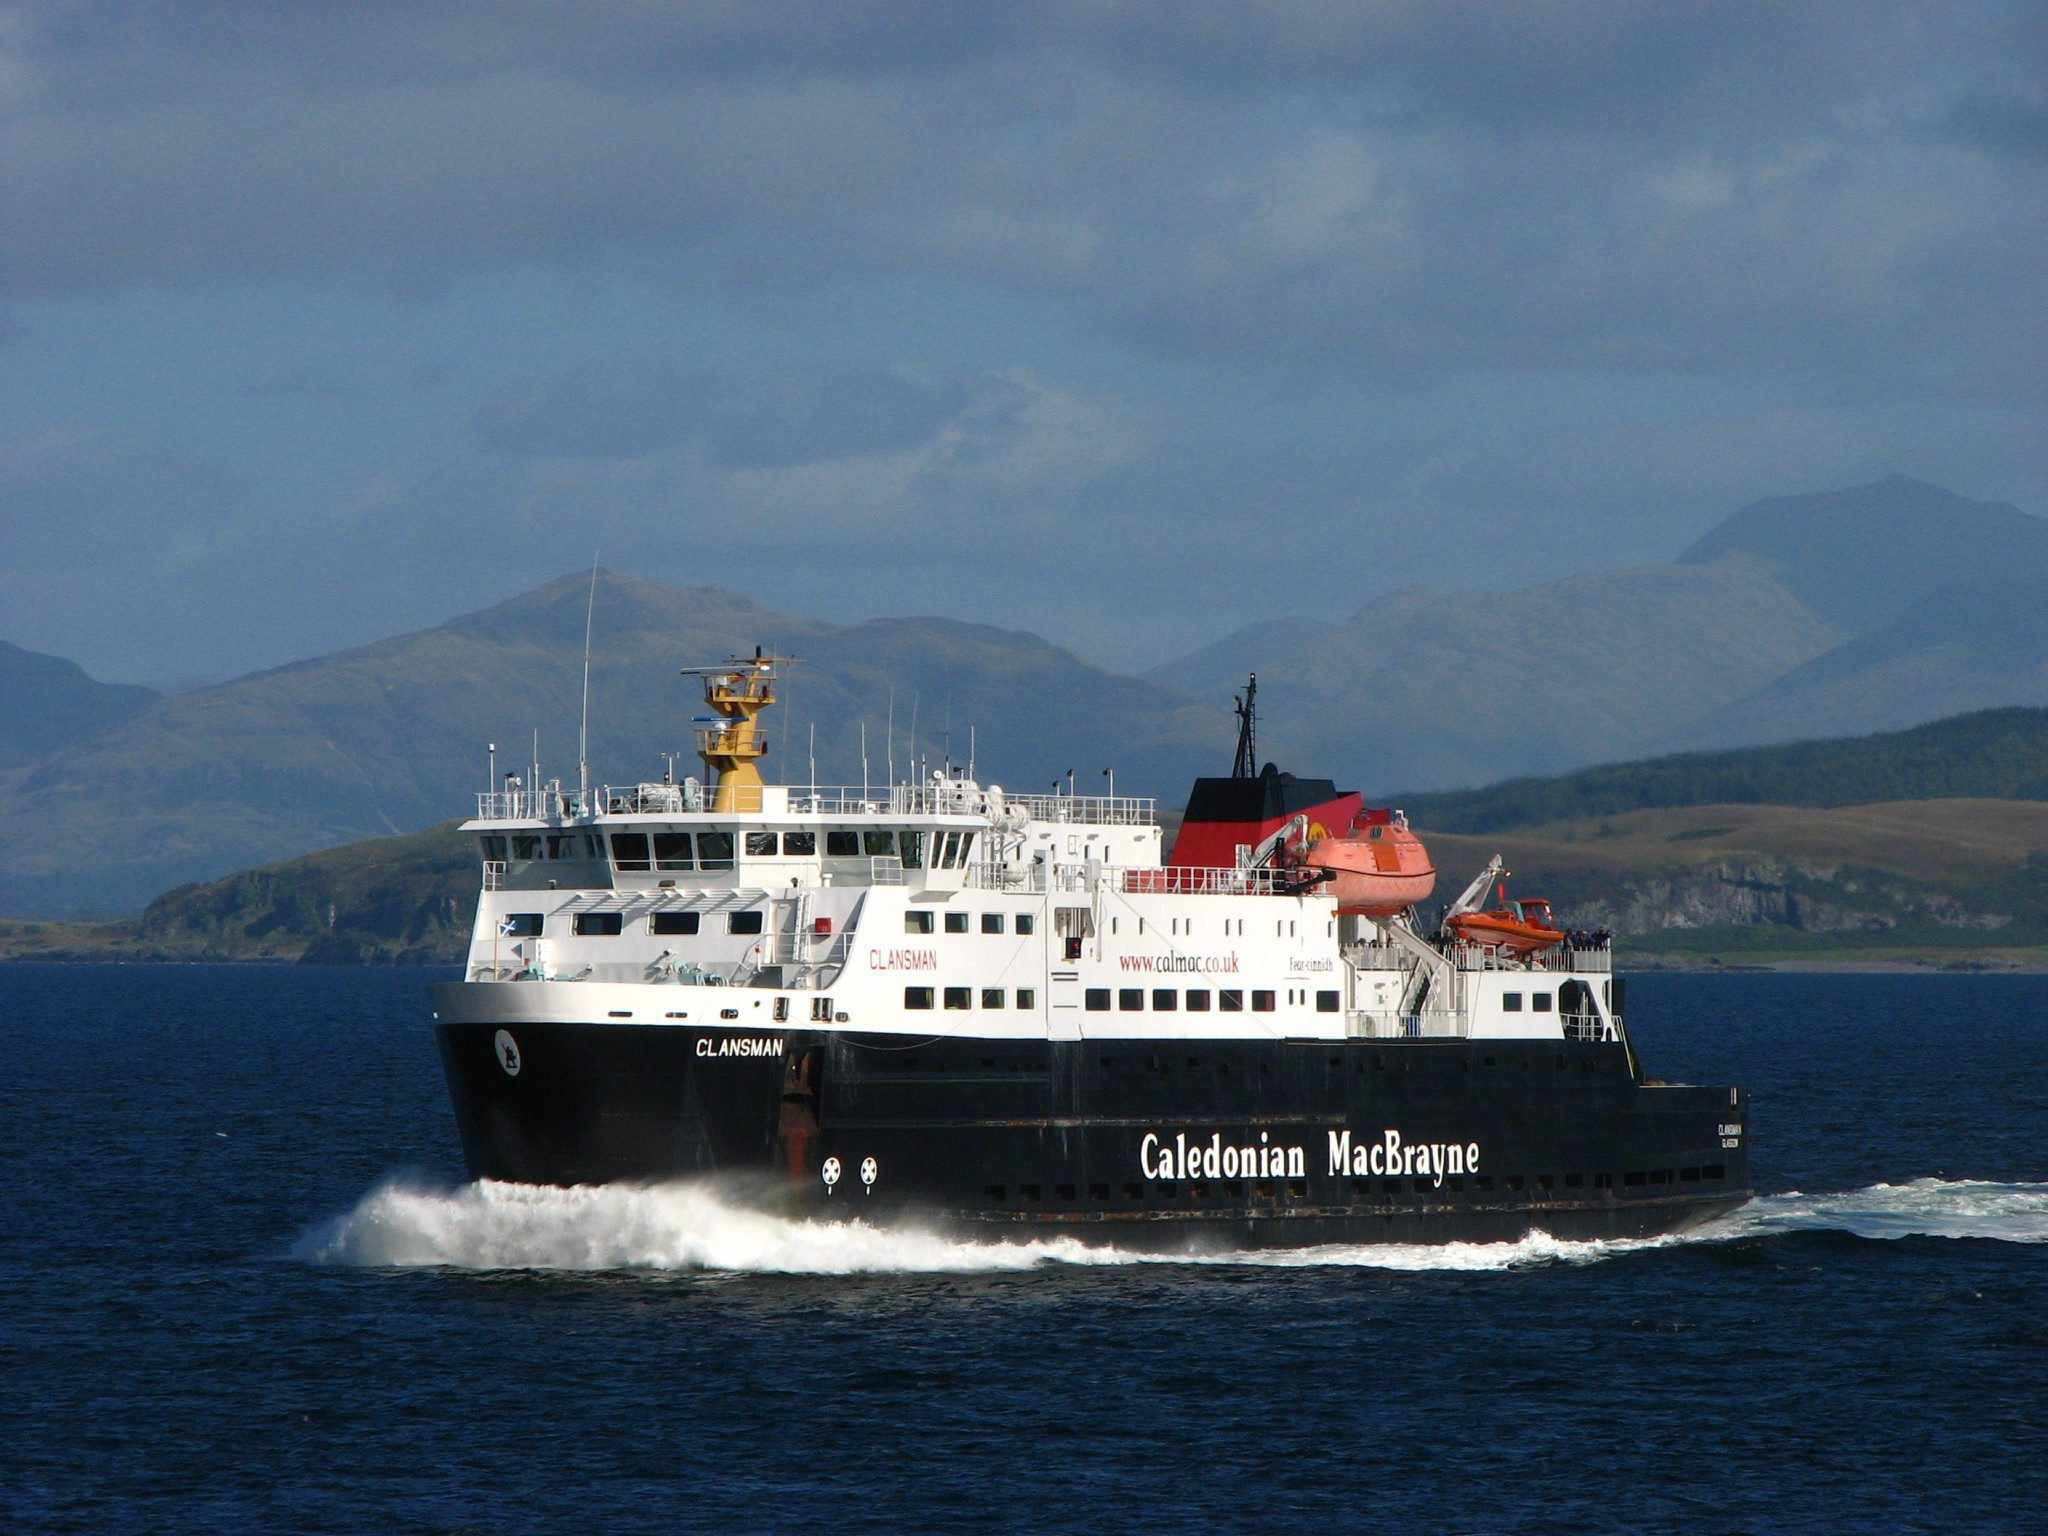 The MV Clansman will host onboard seminars for business people.